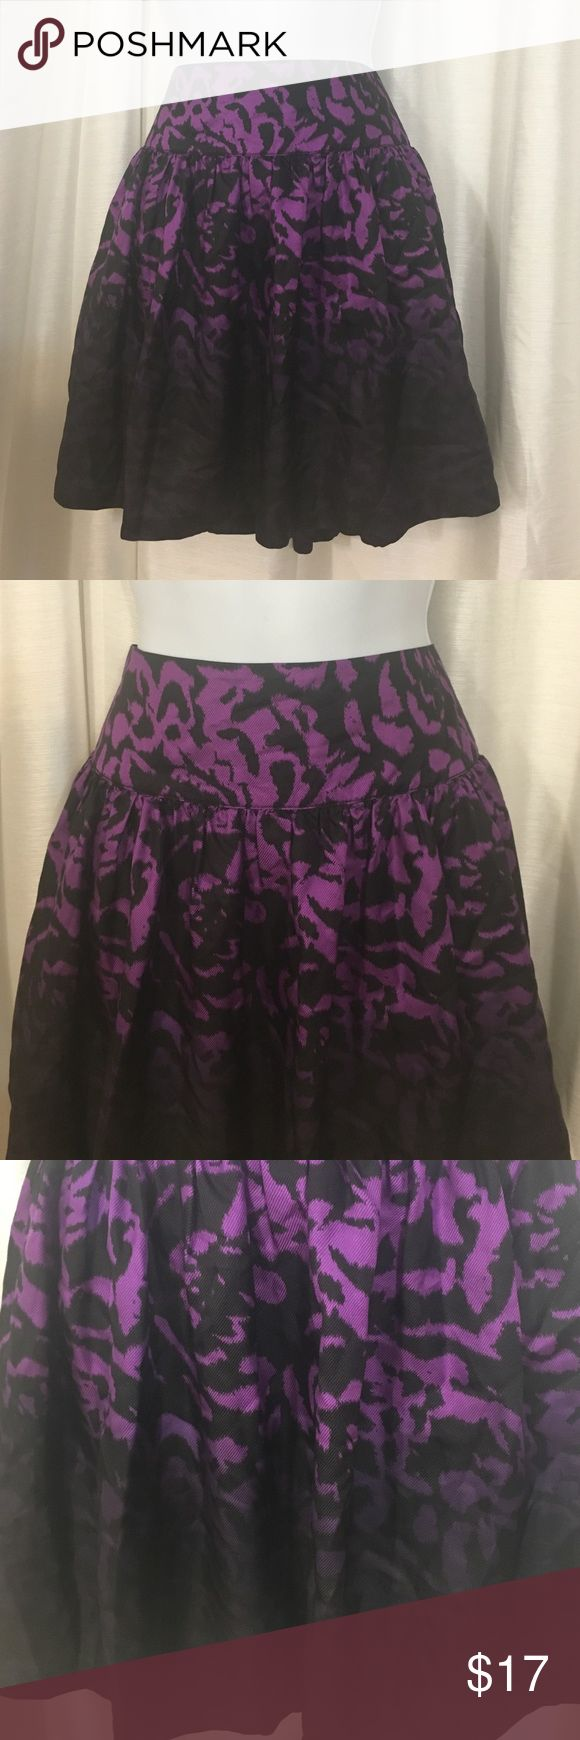 Purple Print Bubble skirt Pleated Sz 6 Kensie Purple and Black print Pleated Skirt. Zipper in left size. Sz 6 Kensie Skirts